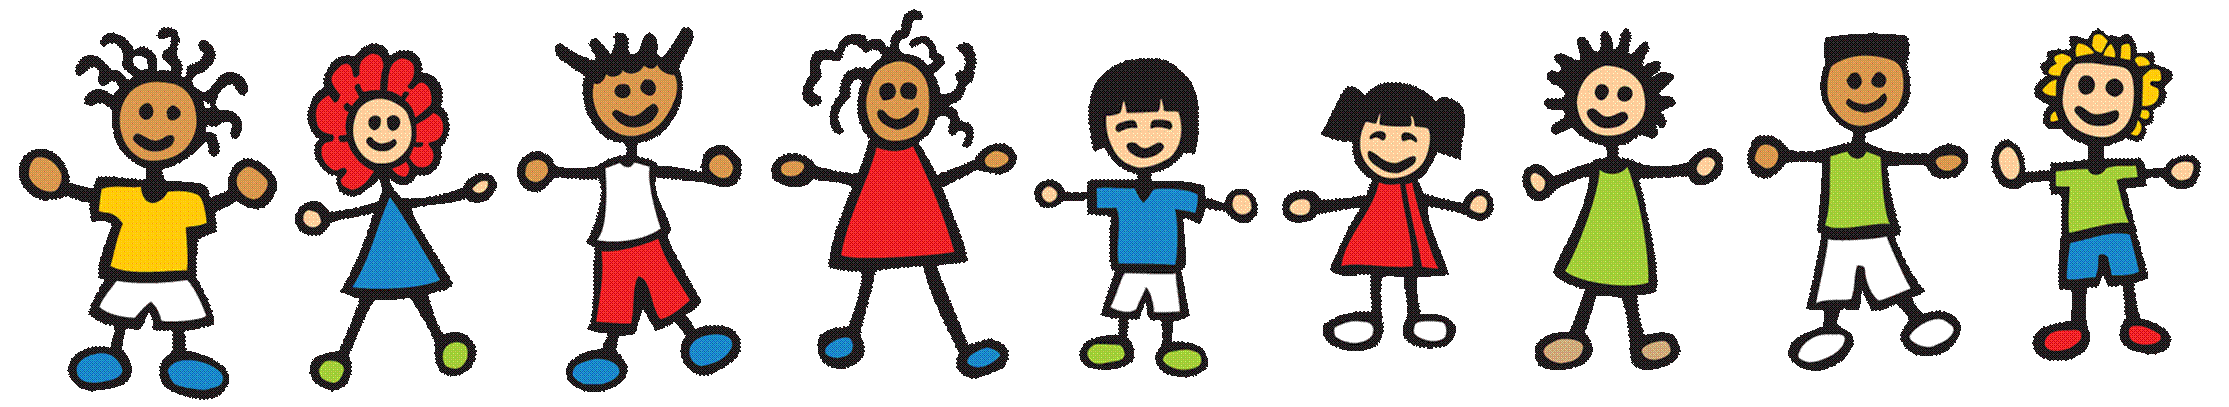 Excited clipart satisfied. Child and adolescent mental